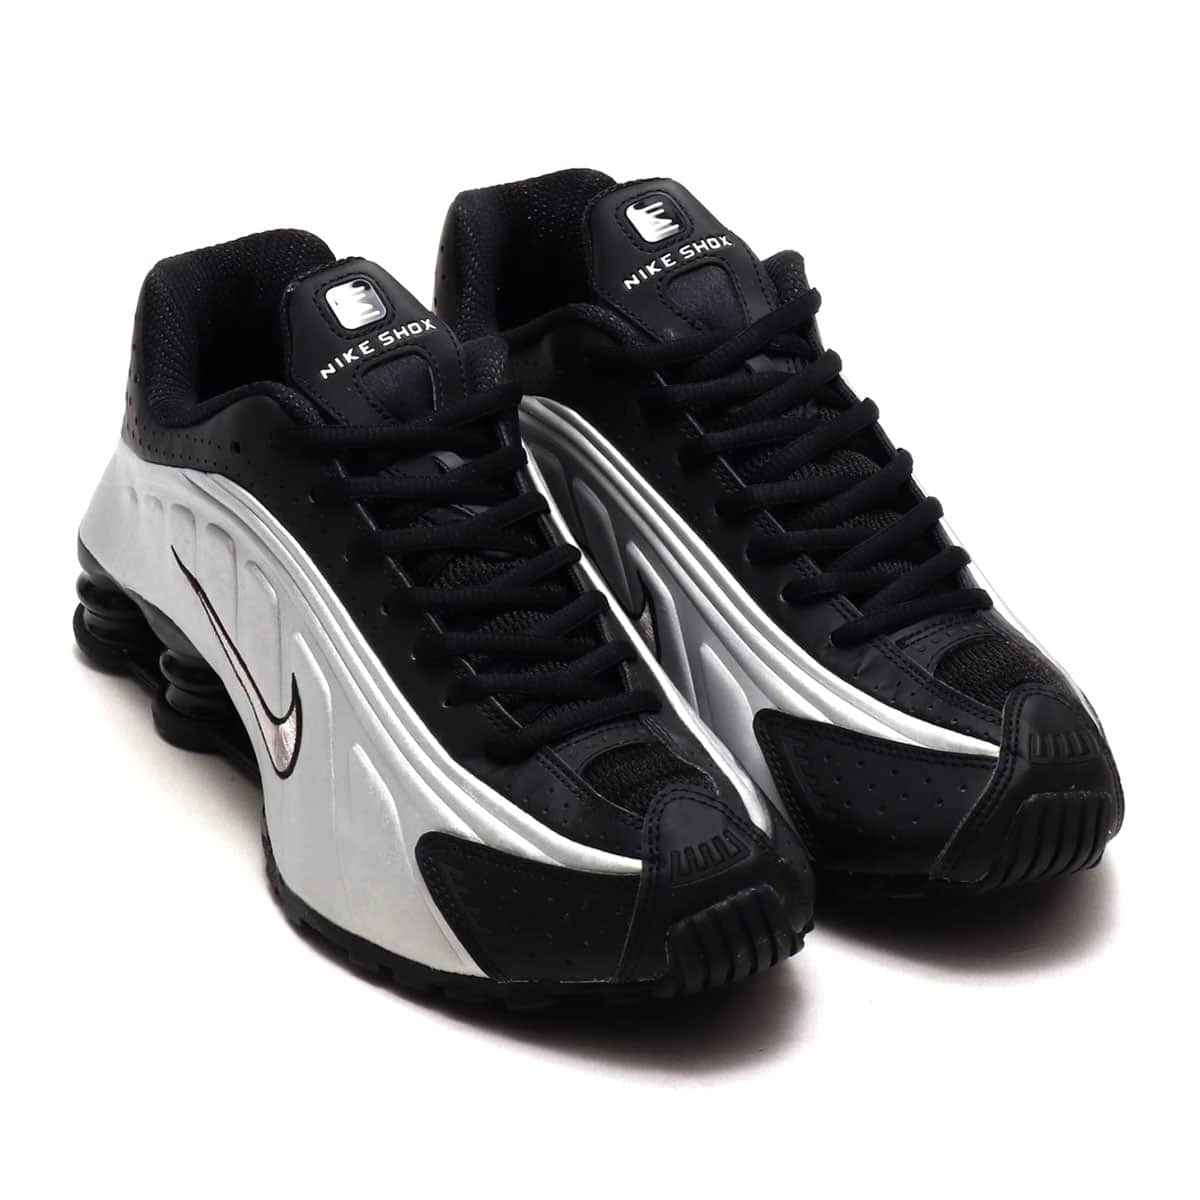 NIKE SHOX R4 BLACK/BLACK-MTLC SLVR-WLF GRY 19SU-S_photo_large